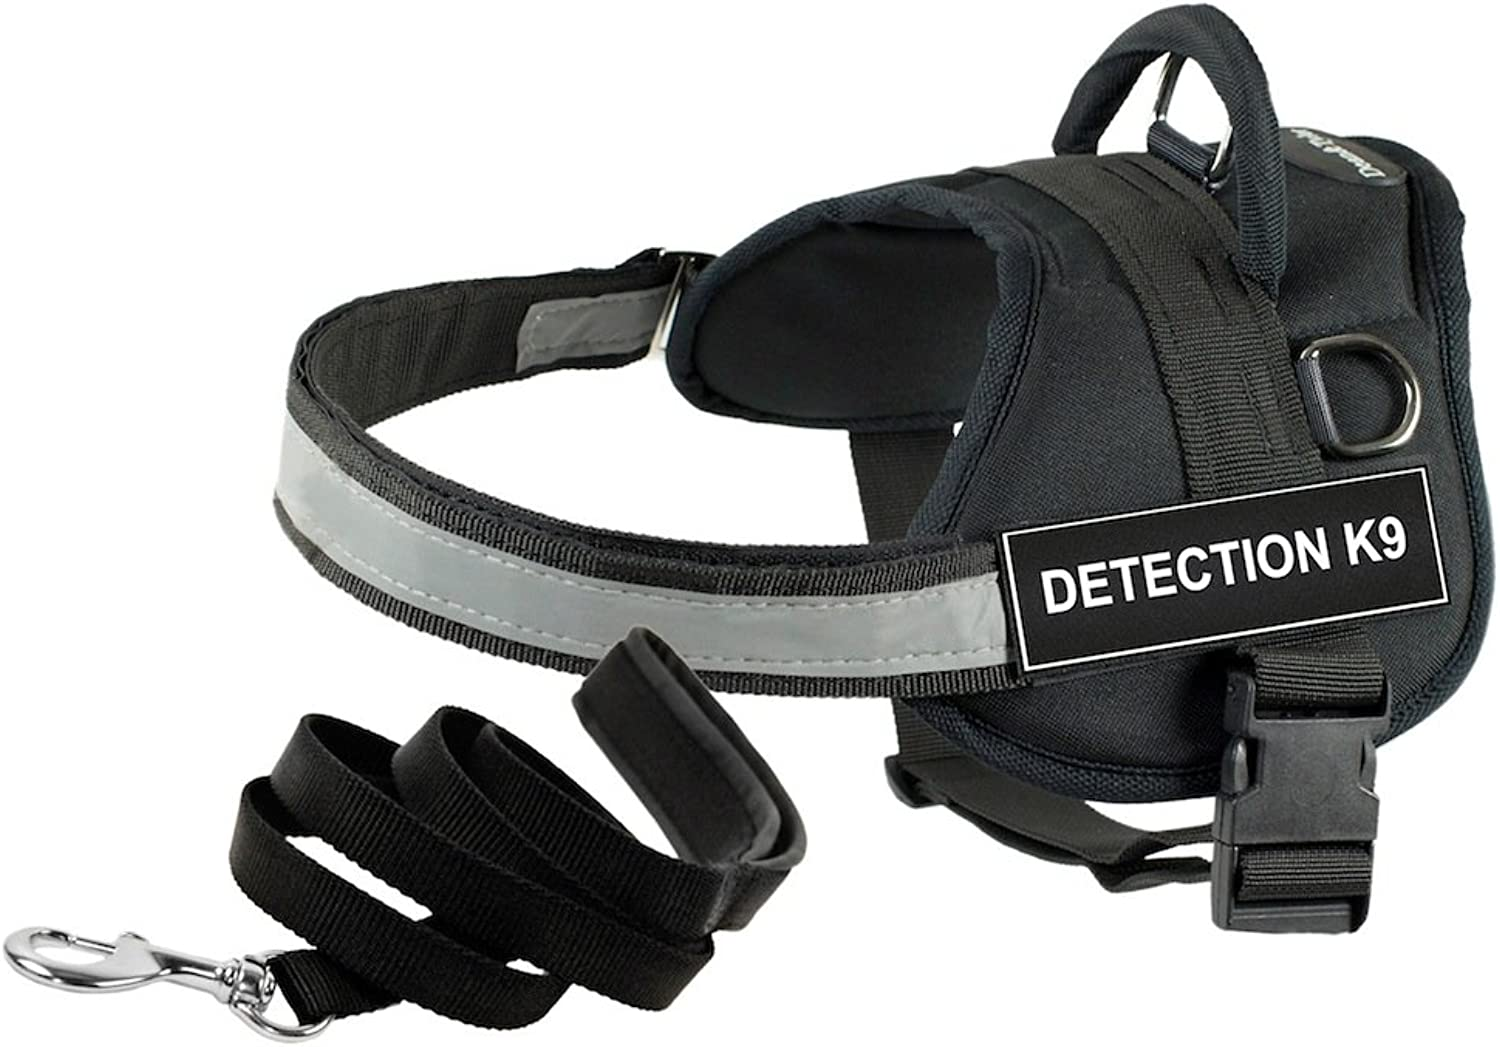 Dean and Tyler Bundle One DT Works Harness, Detection K9, XXSmall (18, 21) + One Padded Puppy Leash, 6Feet Stainless Steel Snap, Black